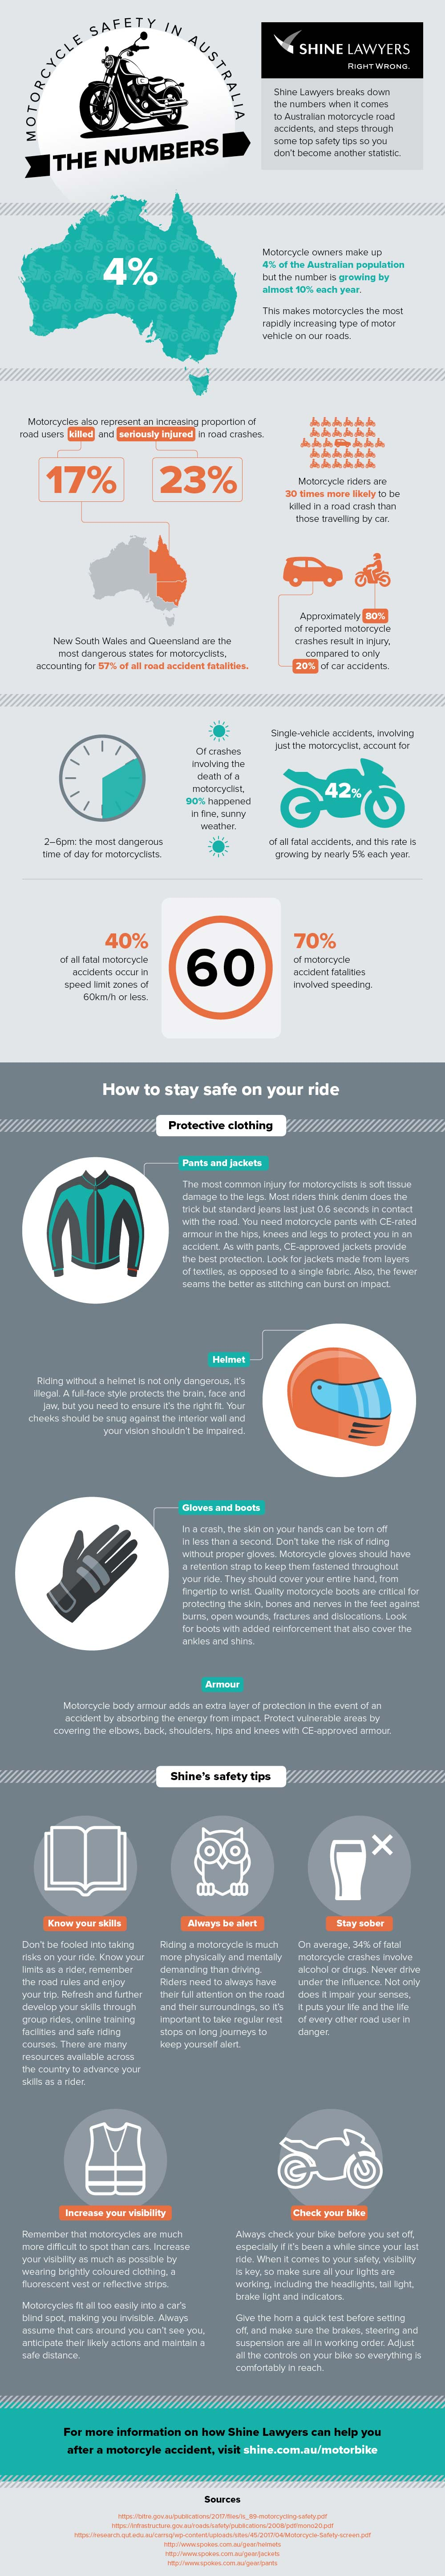 motorcycle-stats-safety-infographic